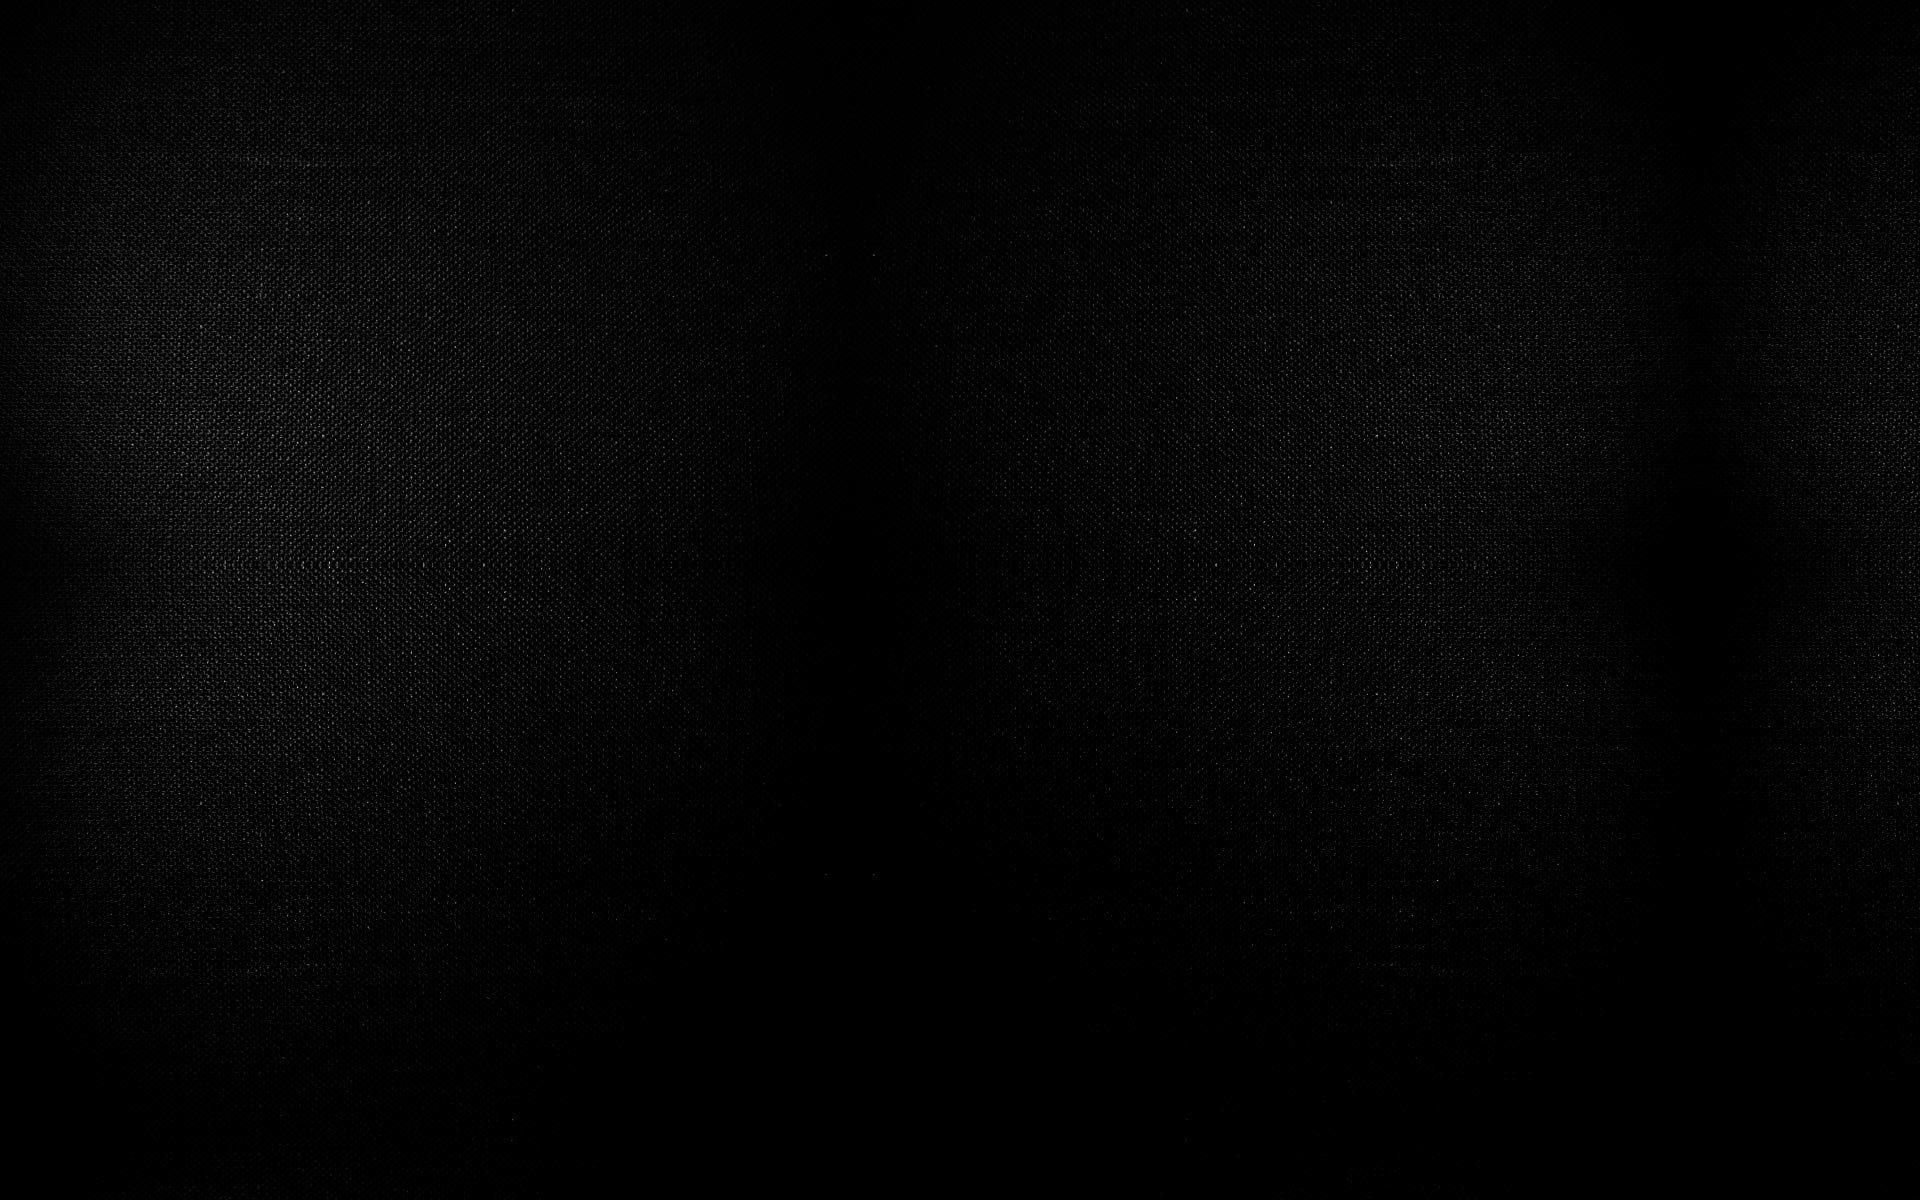 Black Screen Wallpapers Wallpaper Cave